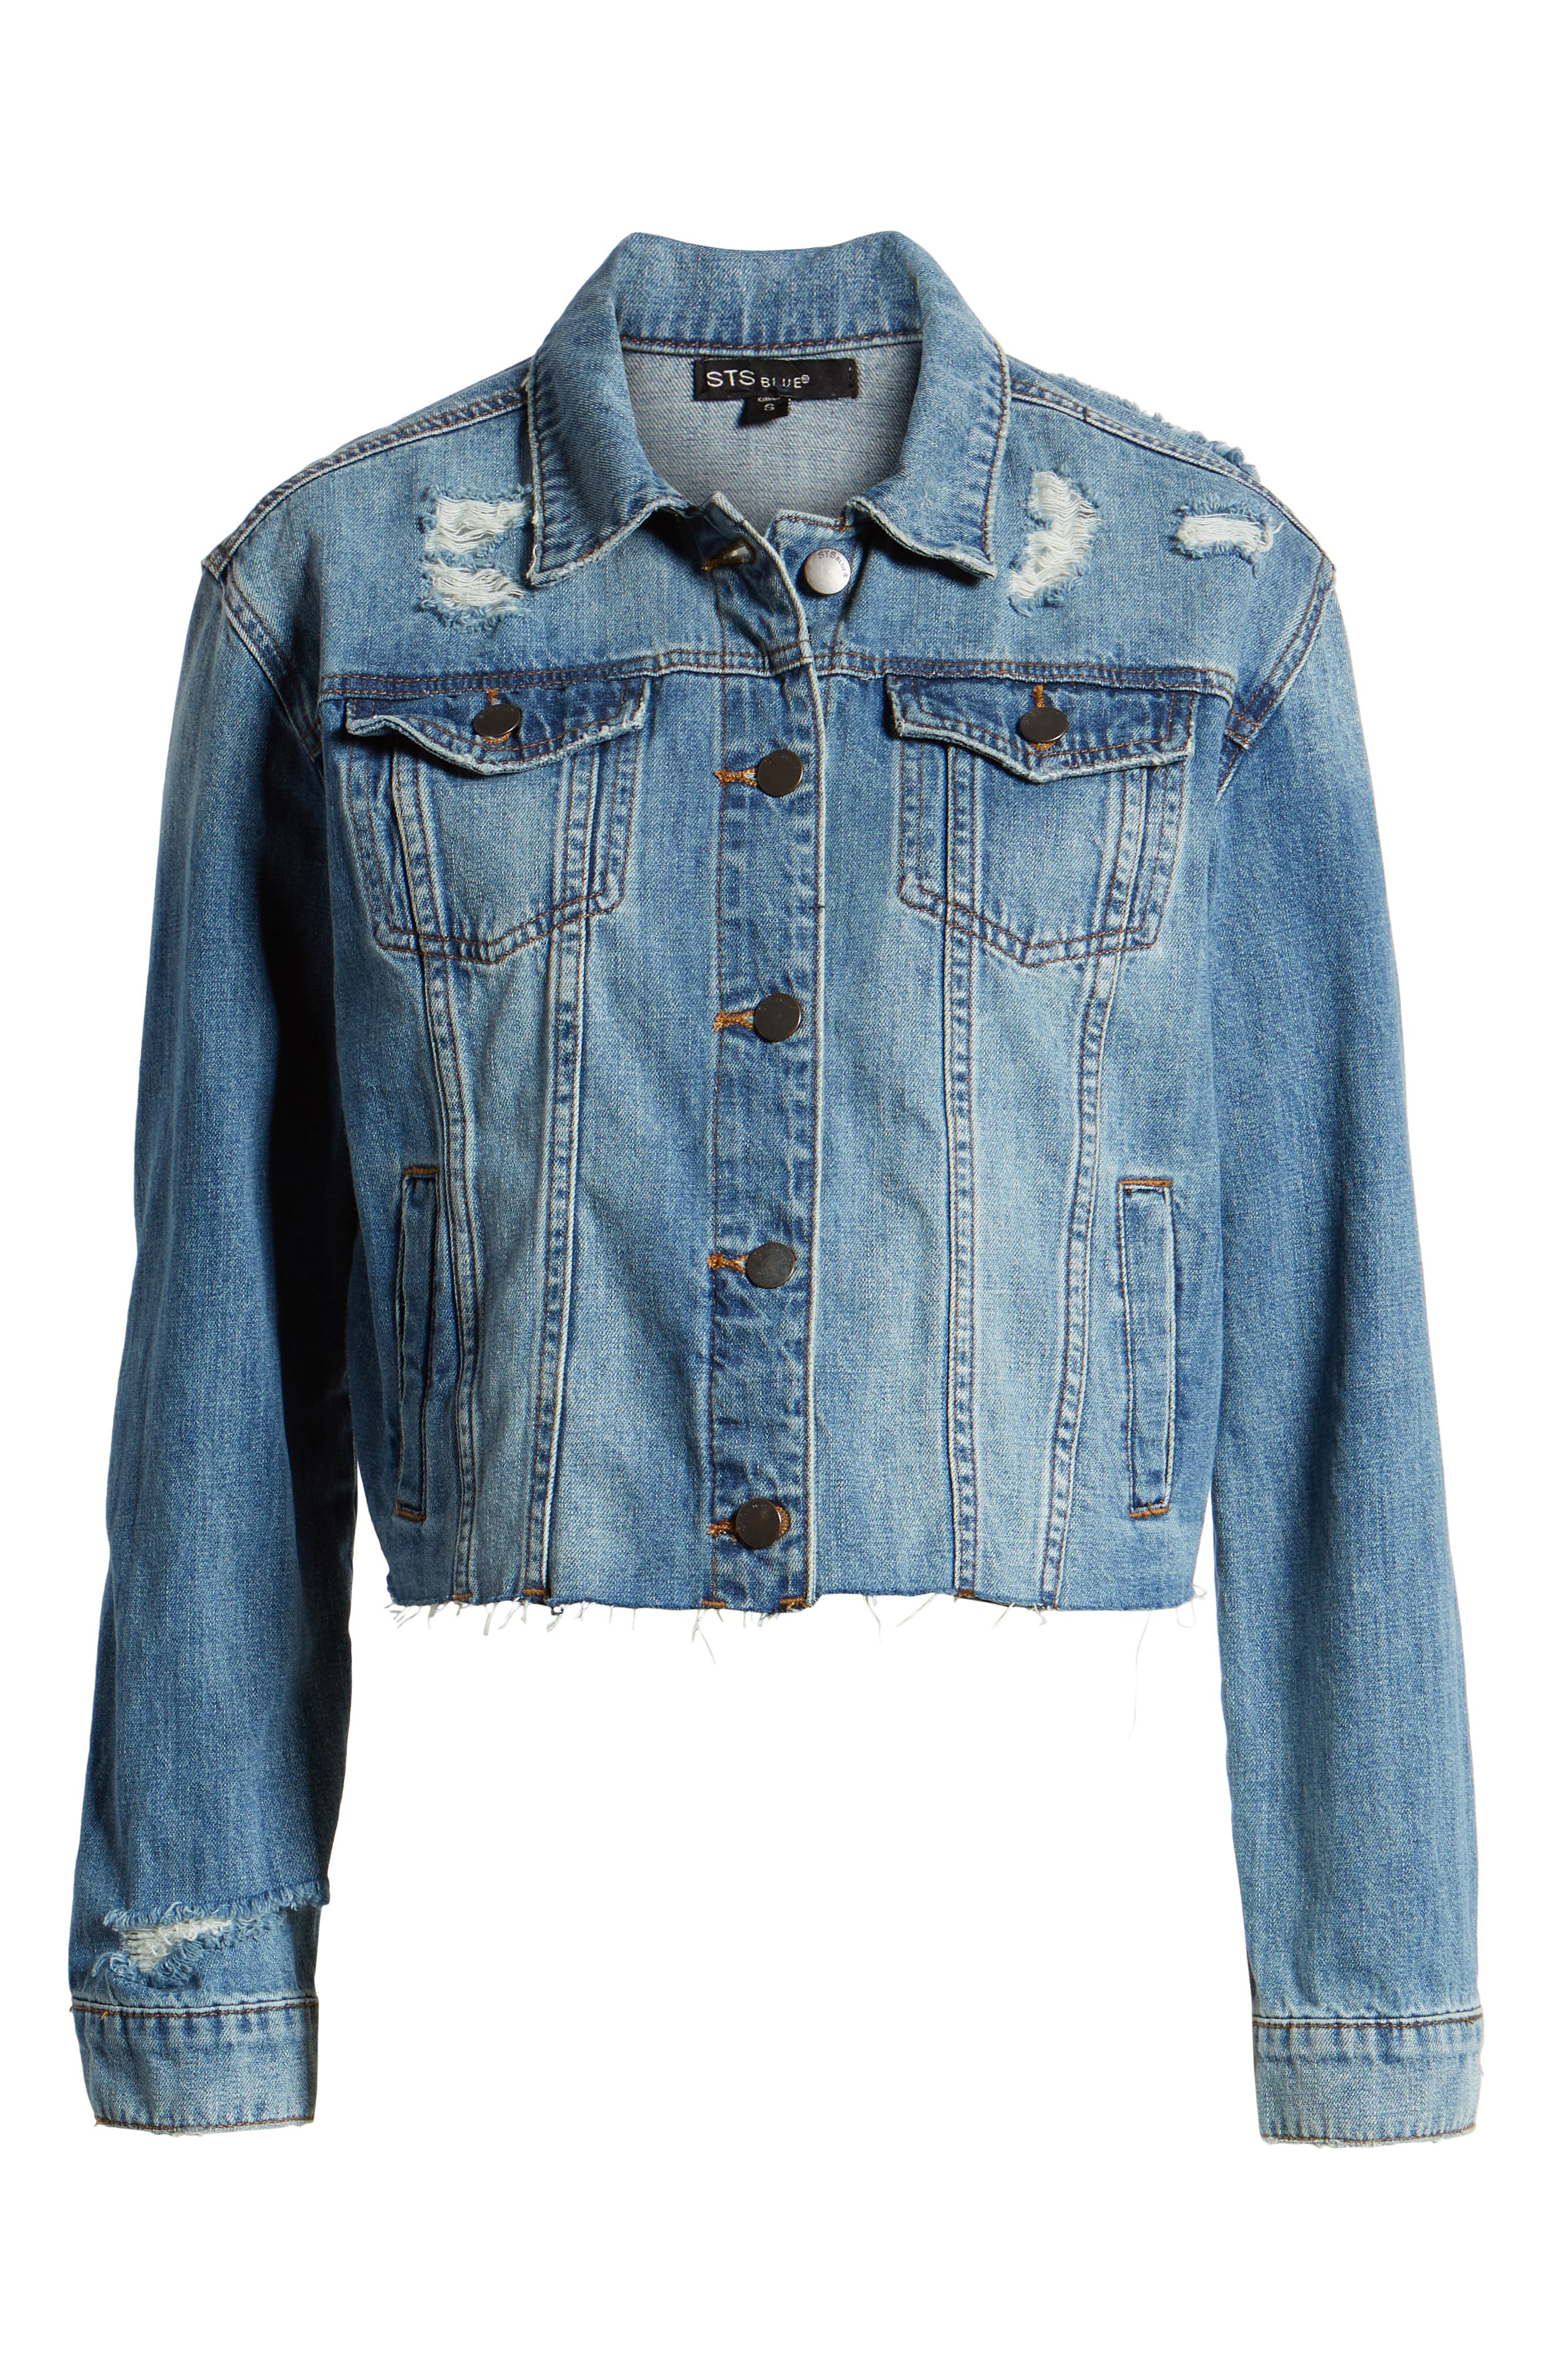 STS BLUE,                             Boyfriend Crop Denim Jacket,                             Alternate thumbnail 6, color,                             400